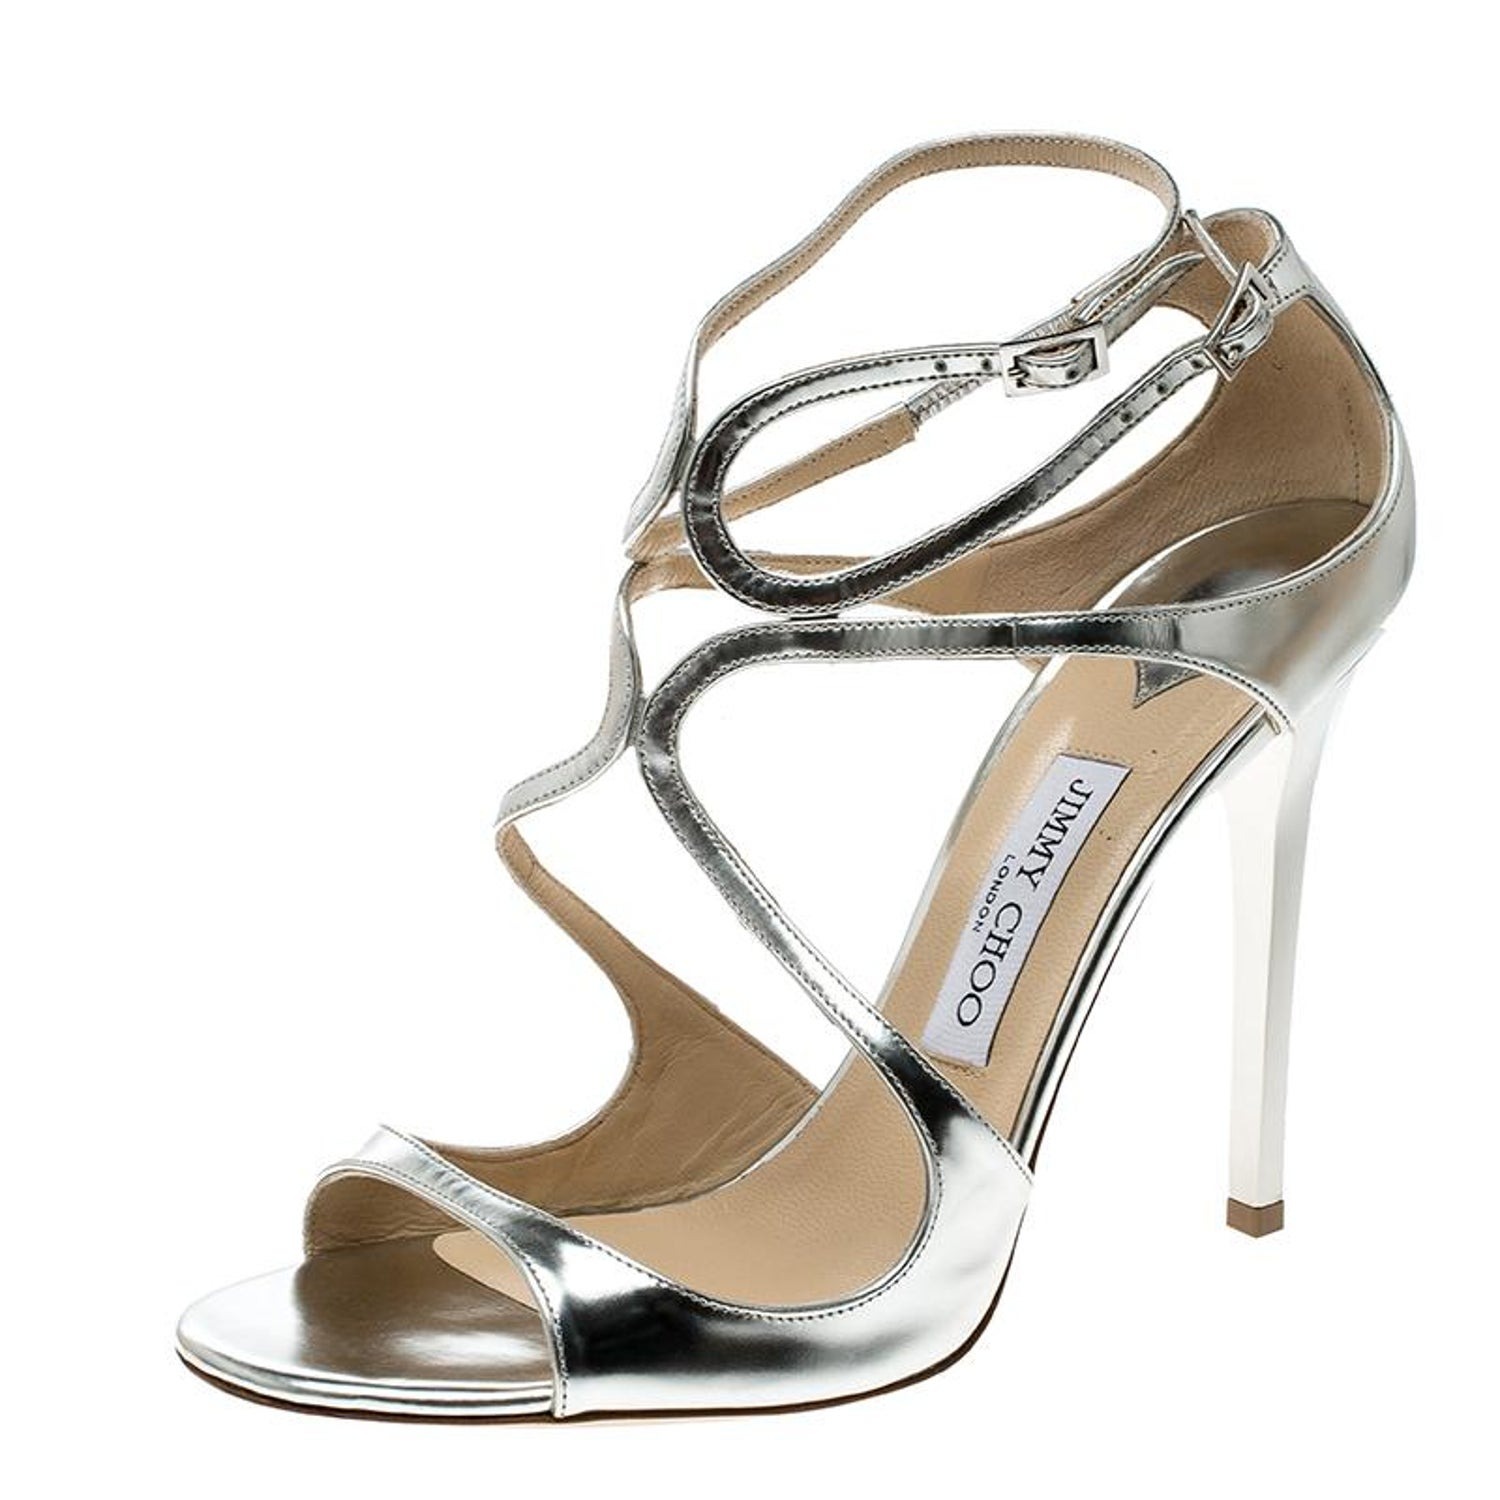 7c17f0d1651 Jimmy Choo Metallic Silver Mirror Leather Lance Strappy Sandals Size 41 at  1stdibs